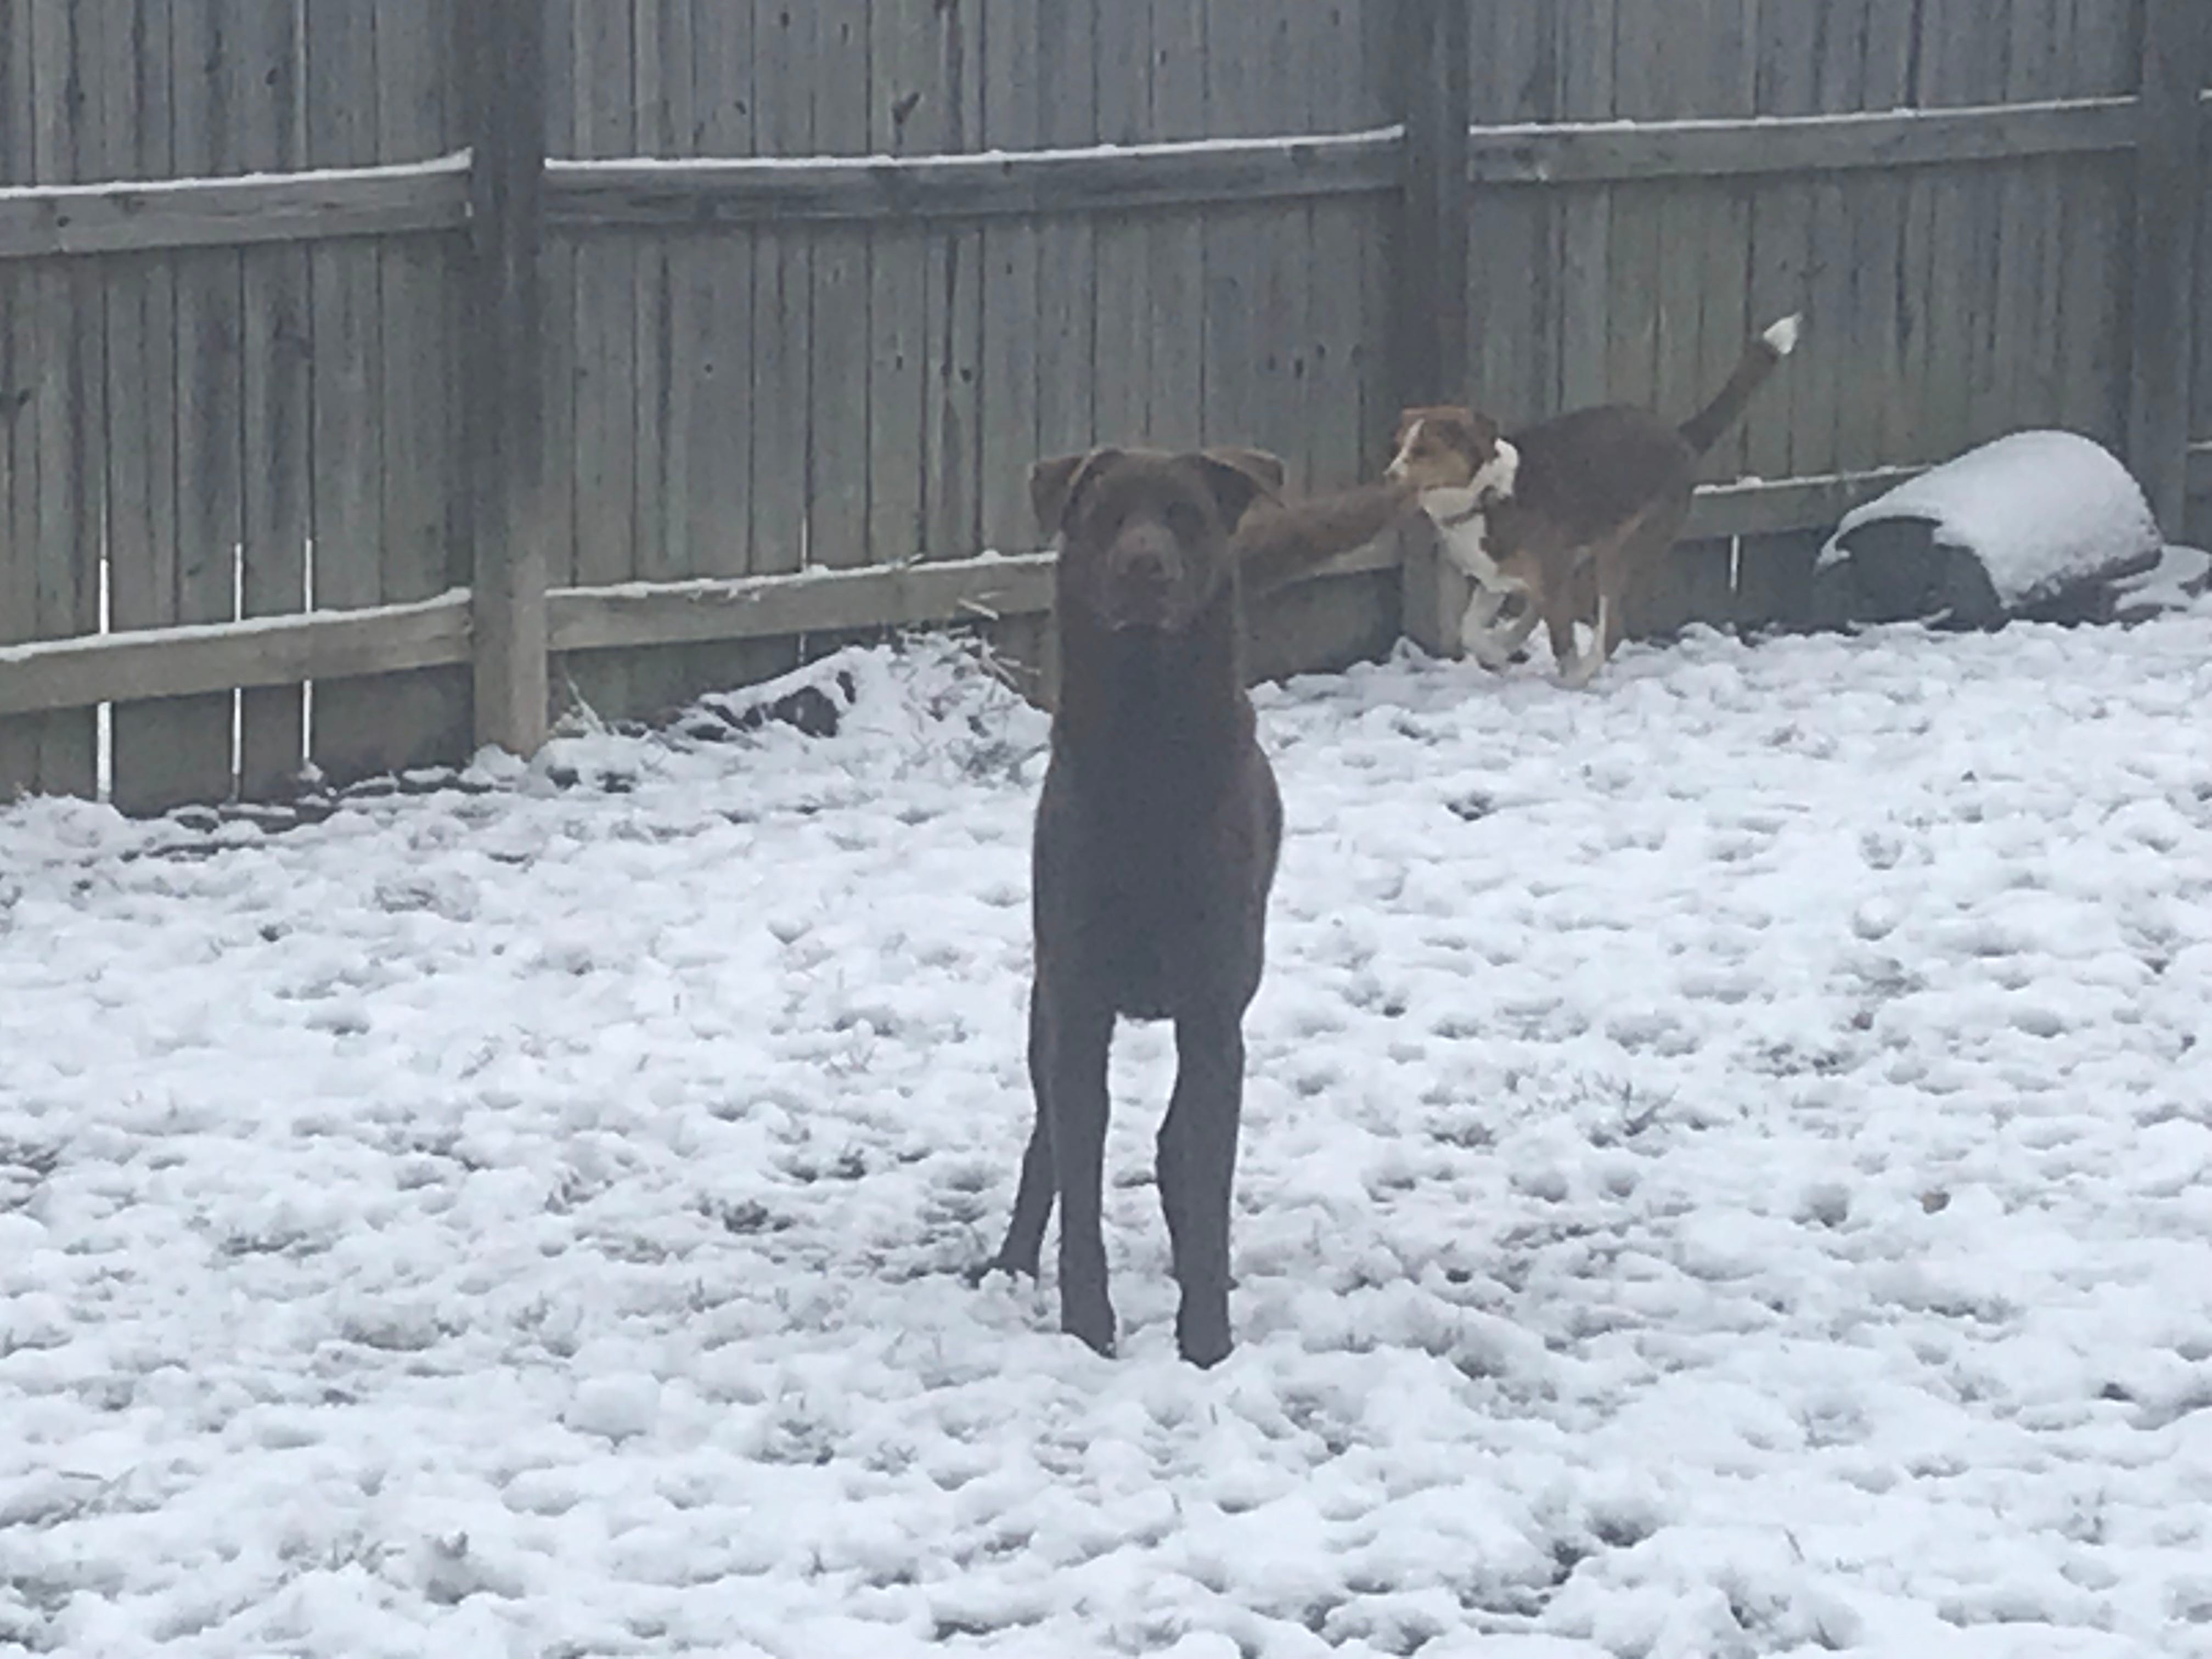 Duncan, a chocolate lab in Medina, poses for a photo while playing in the snow.